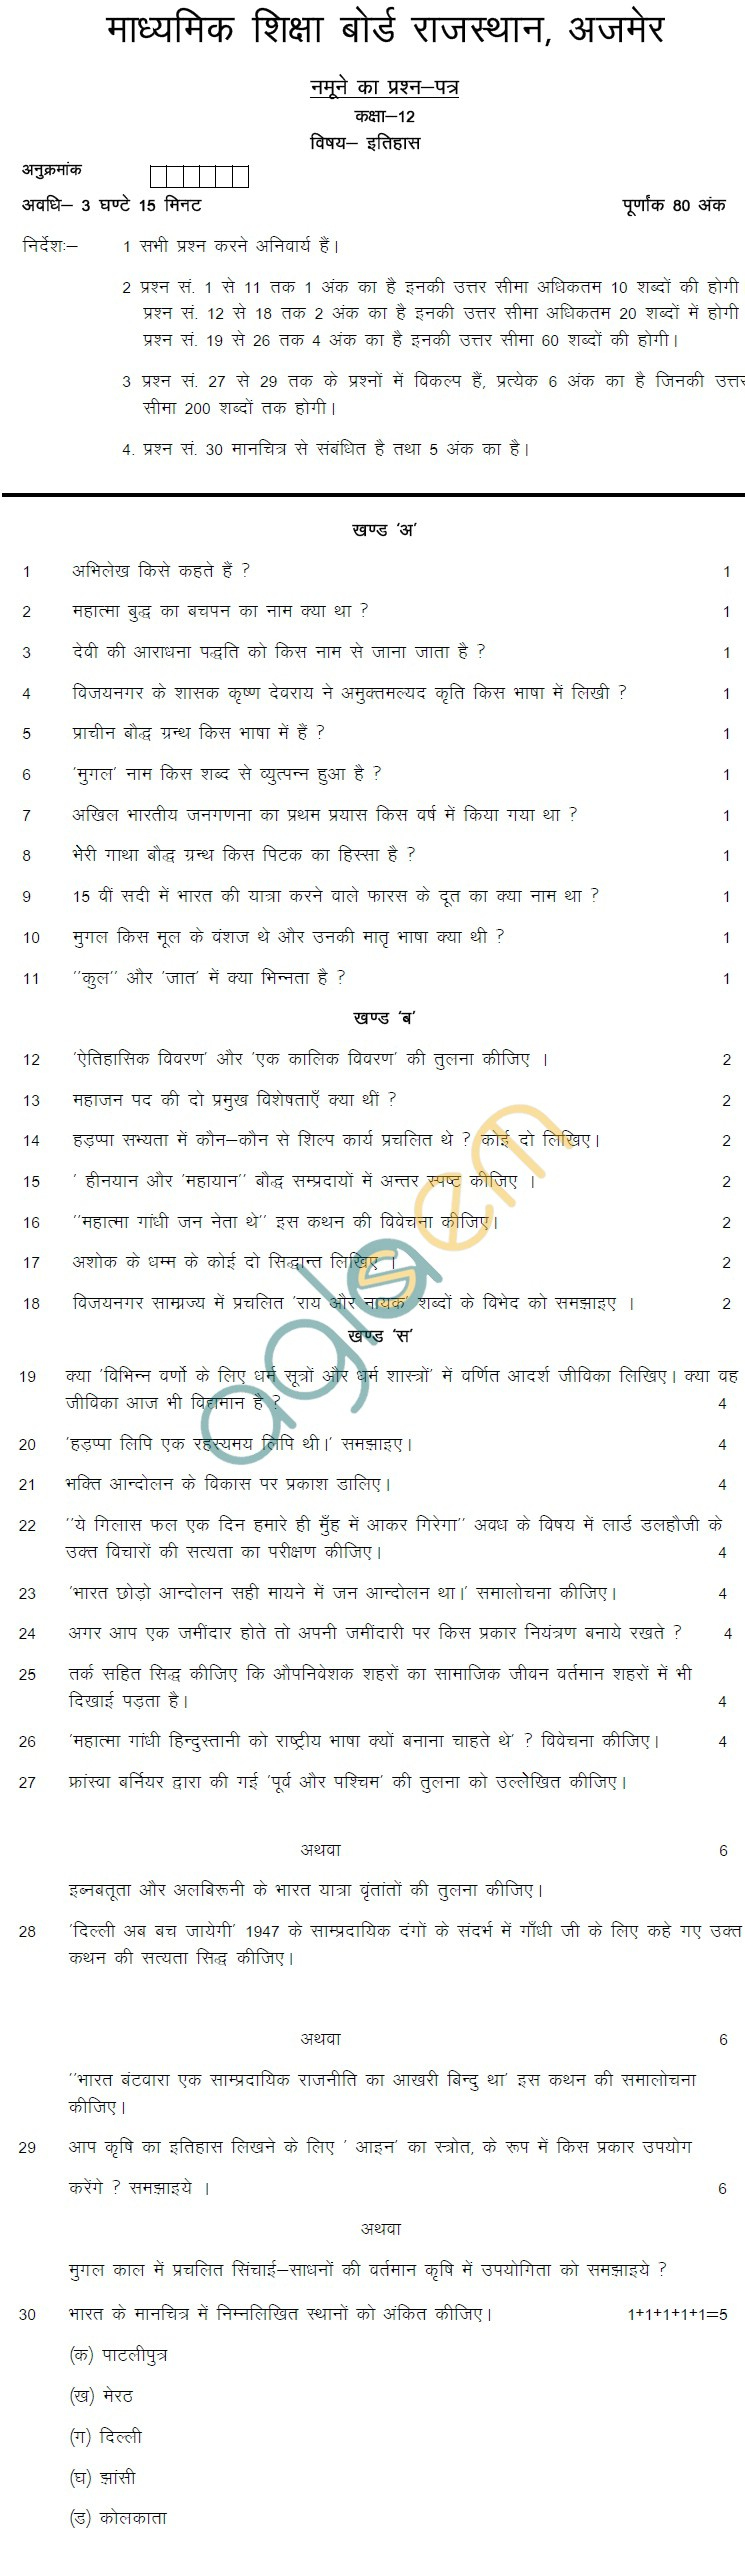 Rajasthan Board Class 12 History Model Question Paper